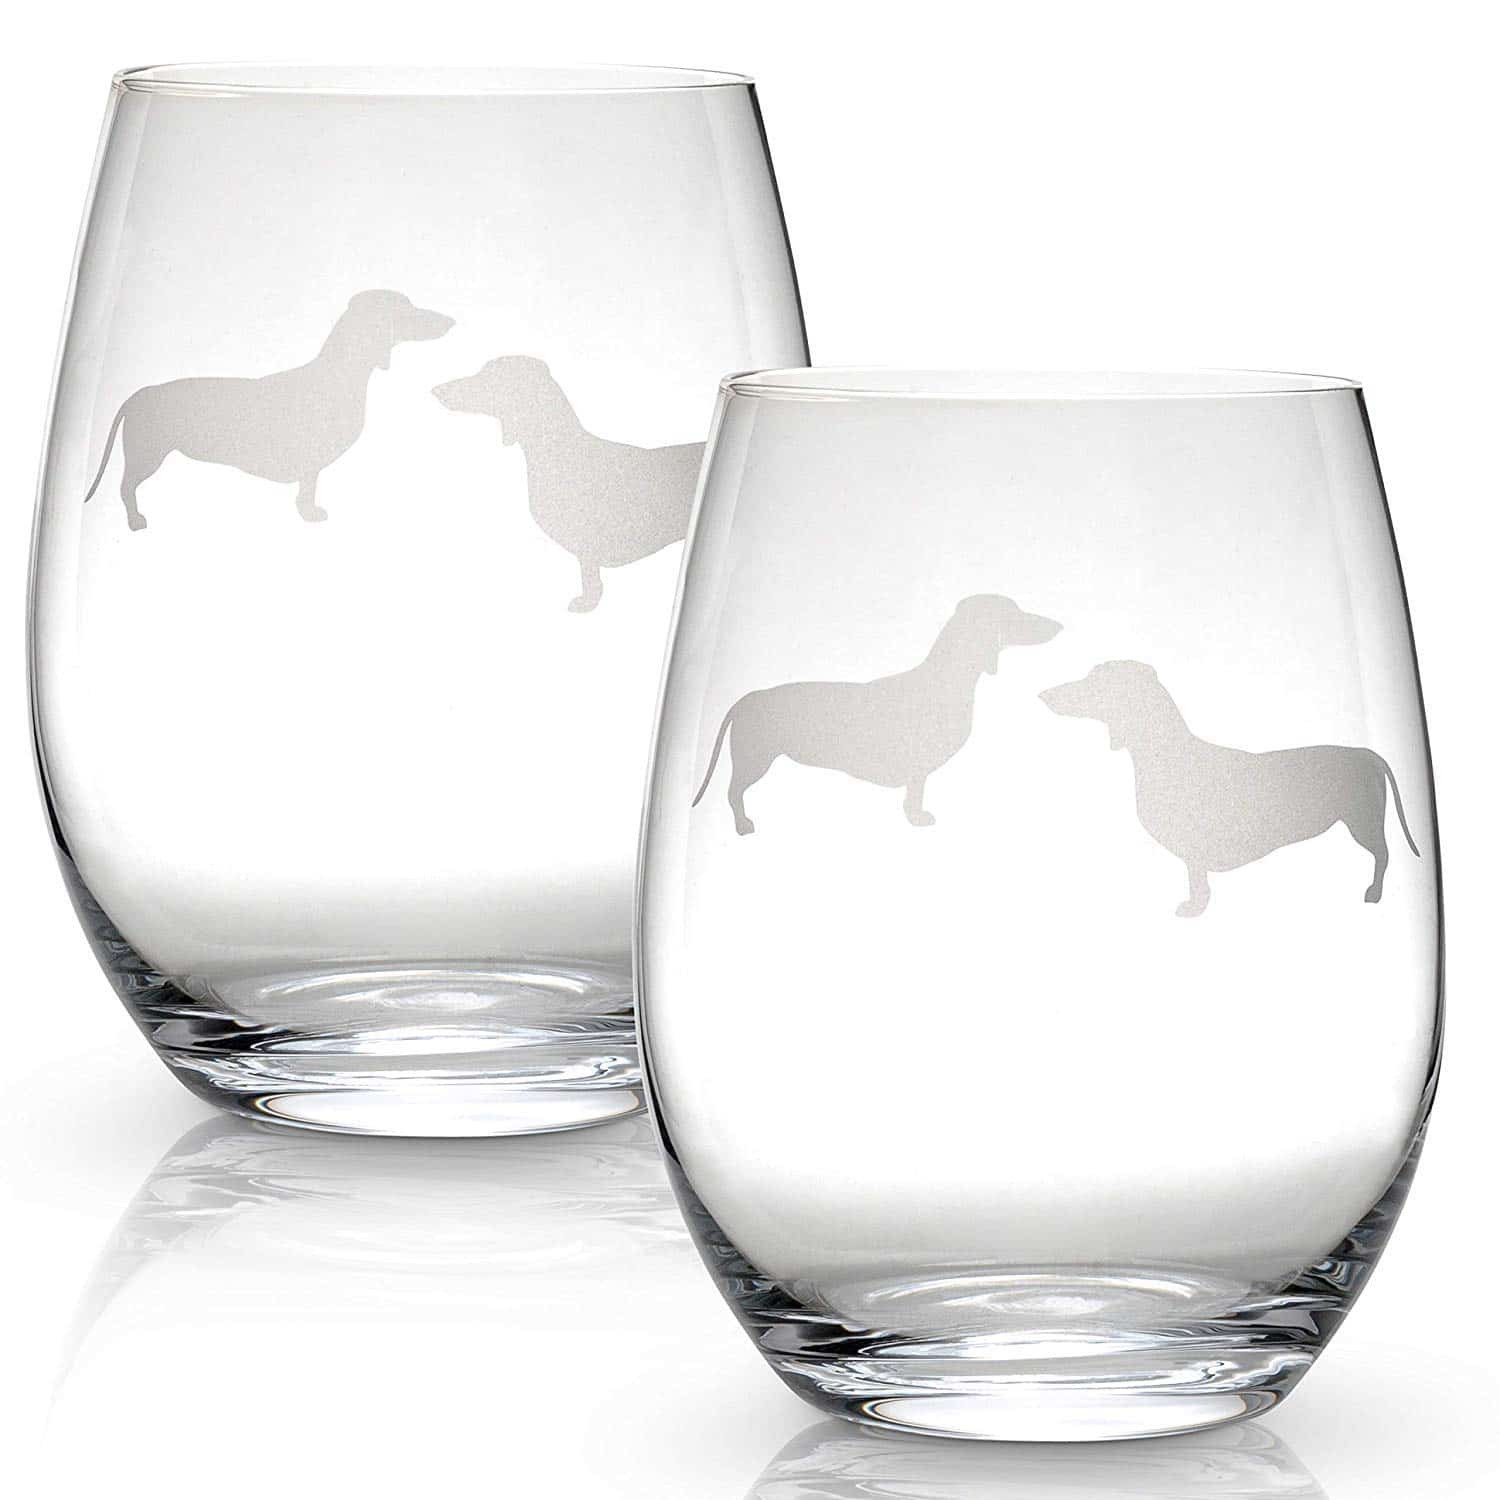 Dachshund Wine Glasses